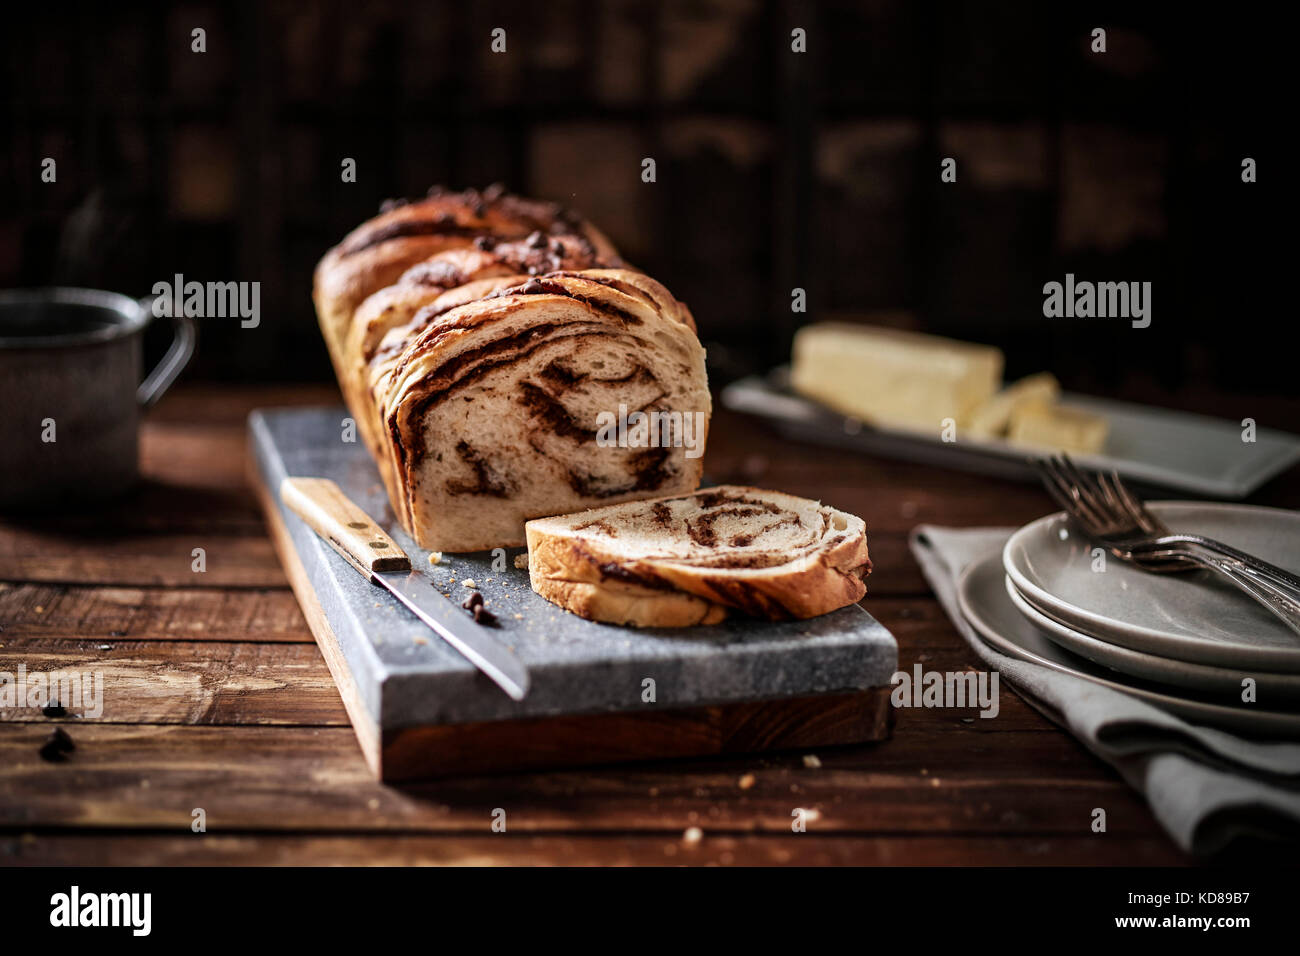 Warm loaf of chocolate braided bread on a marble board in a rustic wood setting. - Stock Image